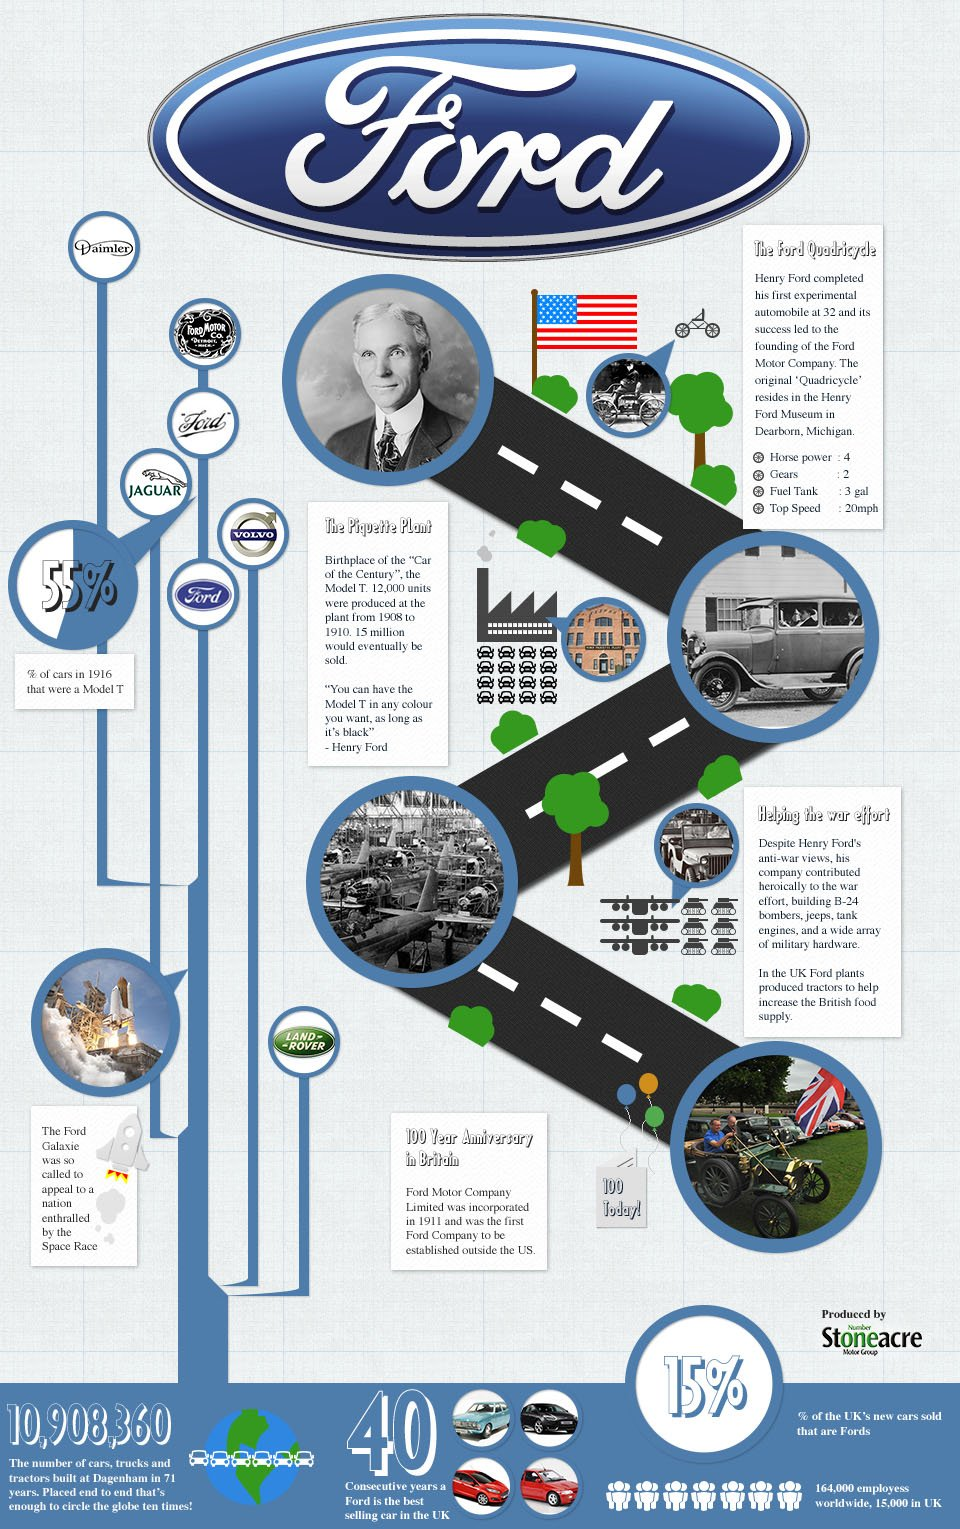 the history of the ford motor Ford motor company of canada, limited was founded in 1904 for the purpose of  of information on the history of ford motor company and ford of canada are.